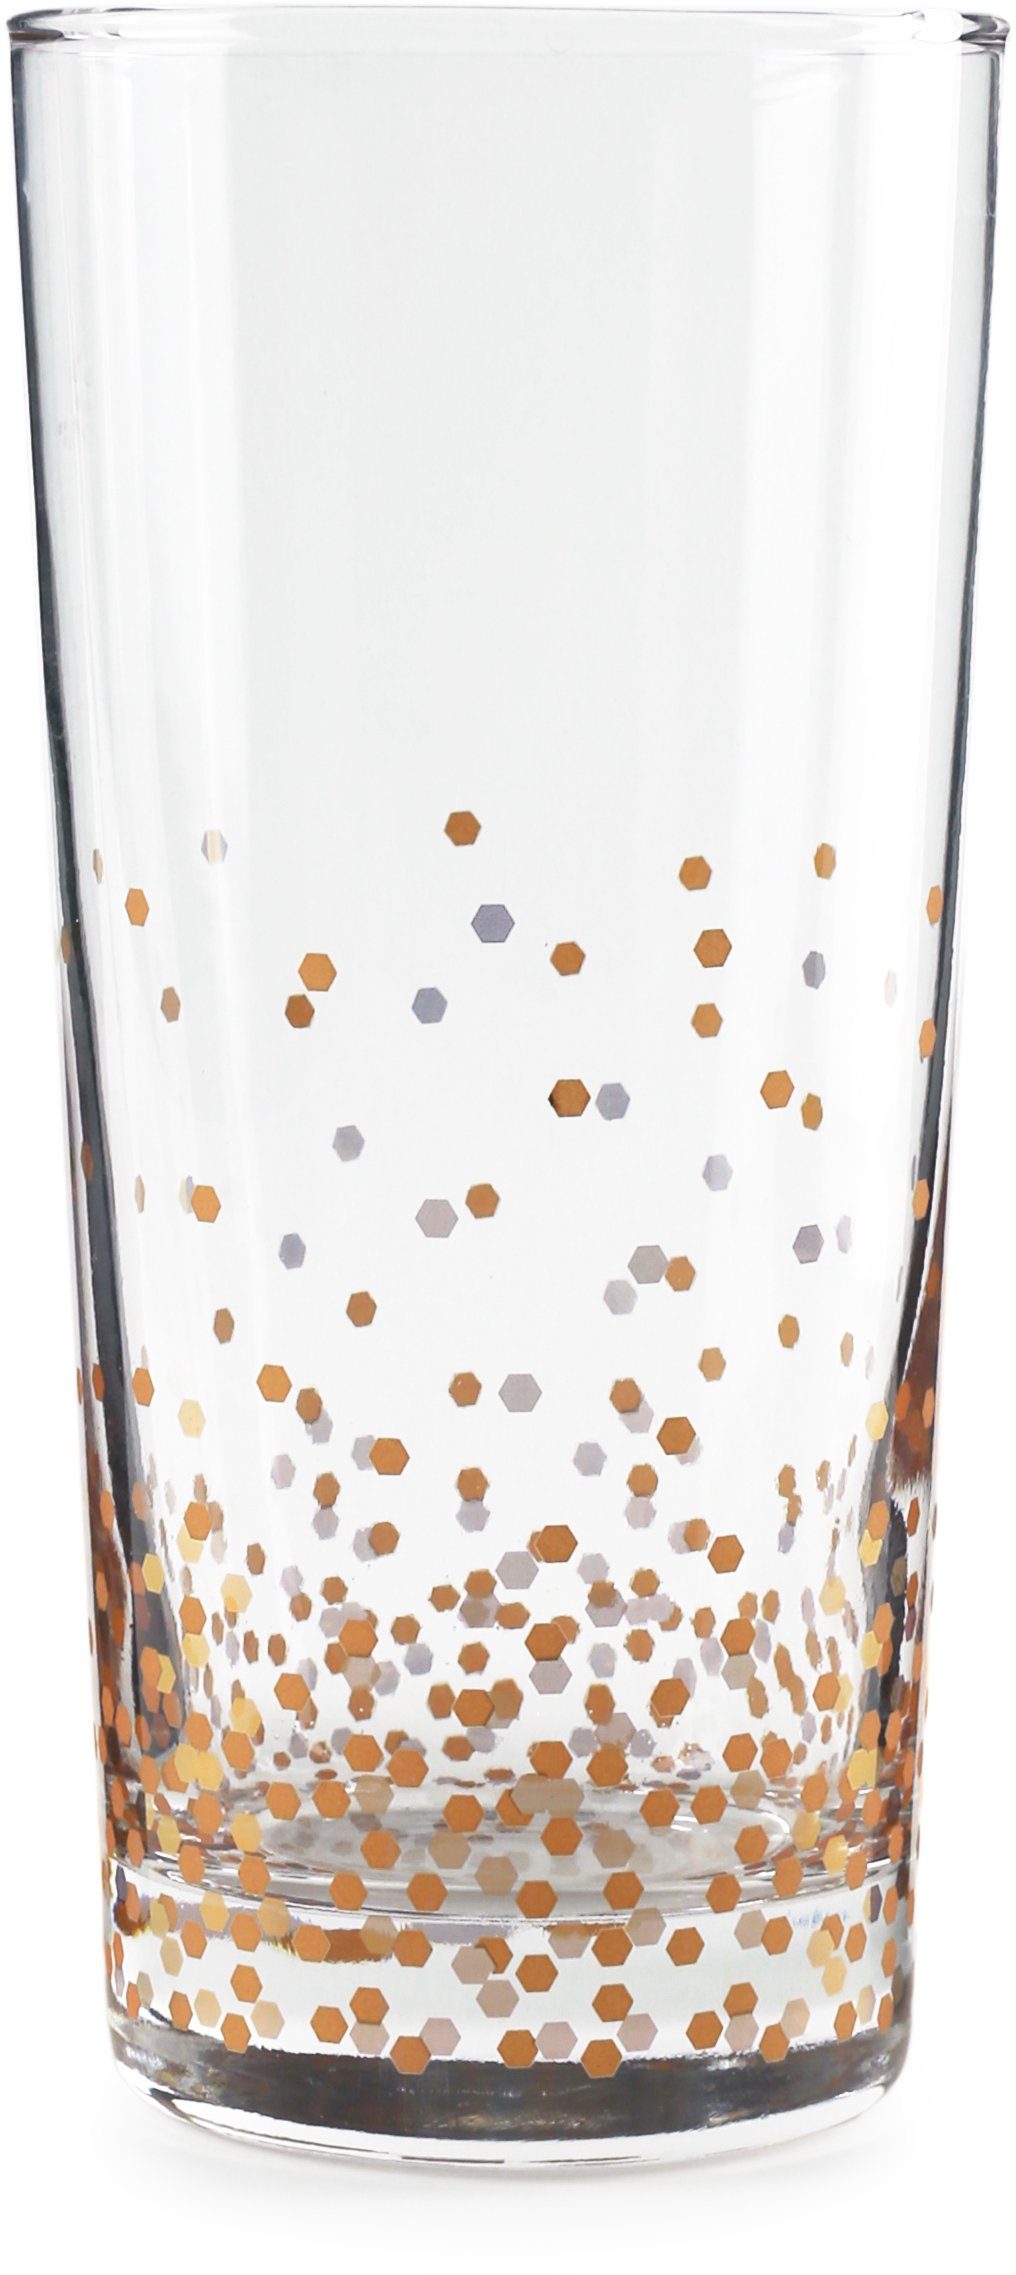 4eb71e89d5e Circleware 76825 Confetti Heavy Base Highball Drinking Glasses Tumblers,  Set of 4 Kitchen Entertainment Ice Tea Beverage Cups Glassware for Water,  Juice, ...